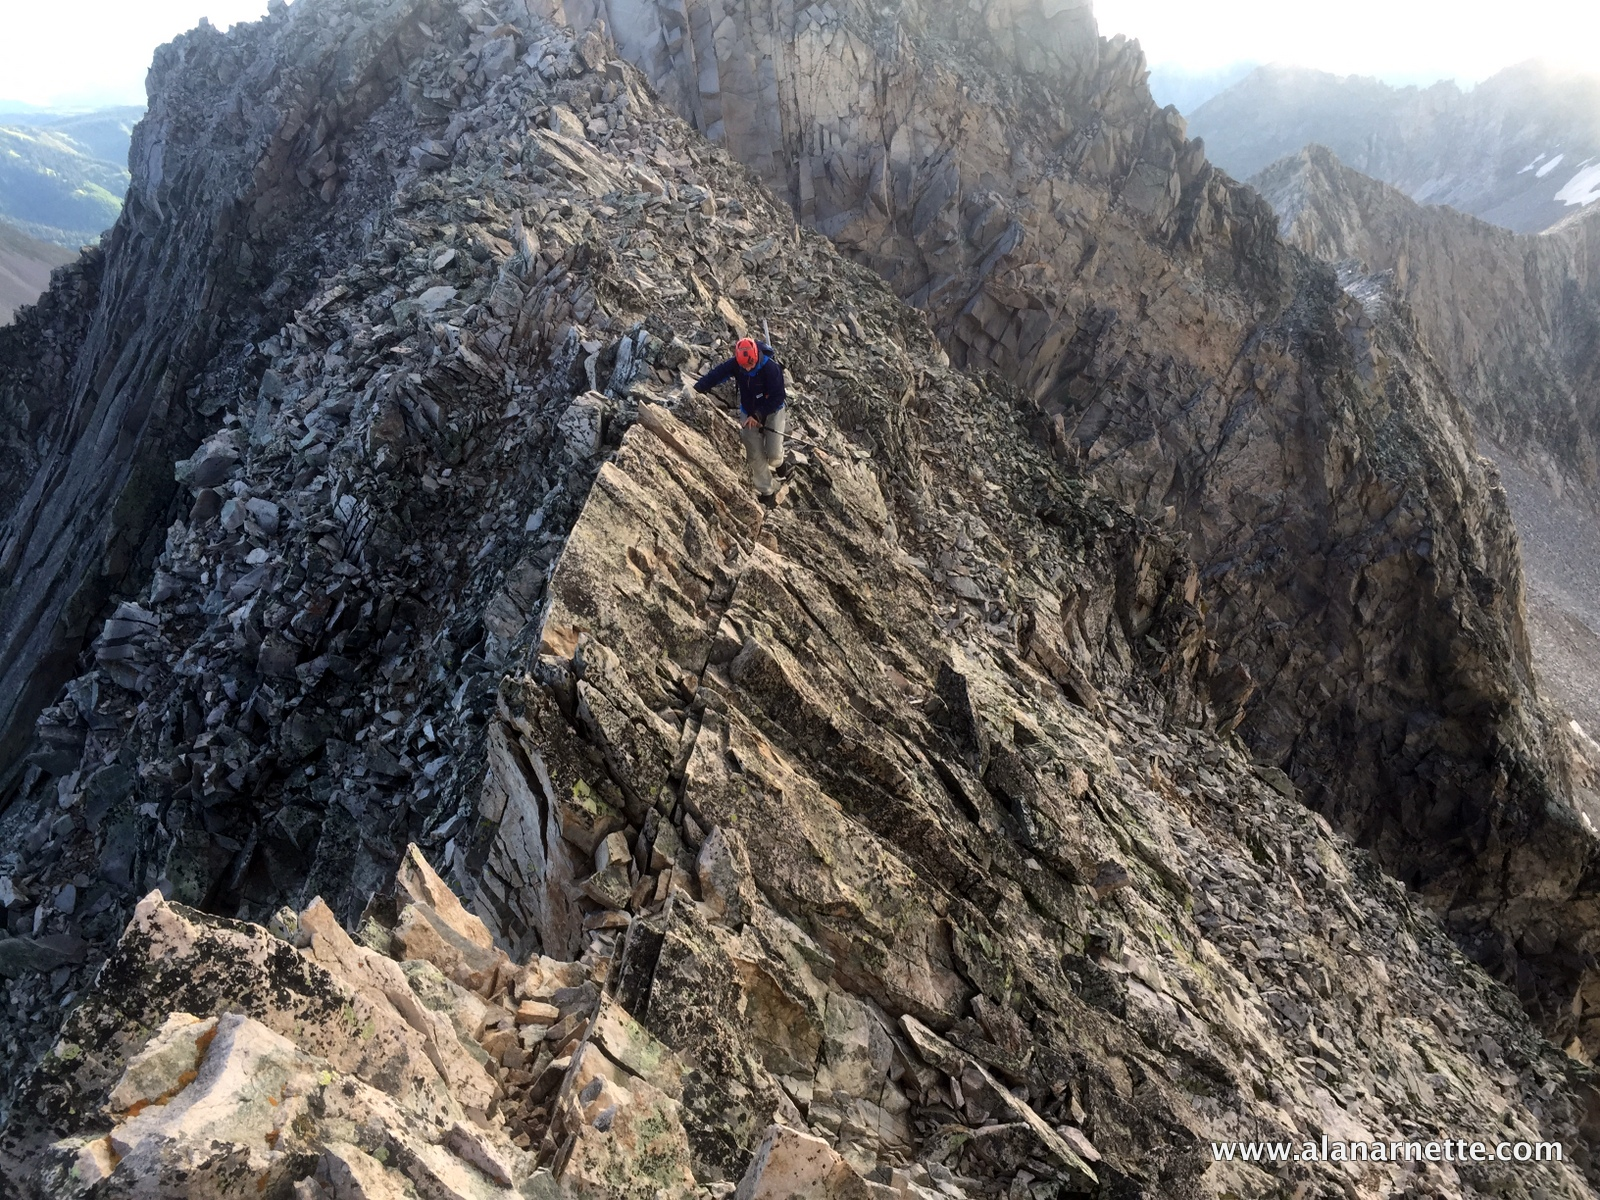 Jim playing on the Knife Edge ridge